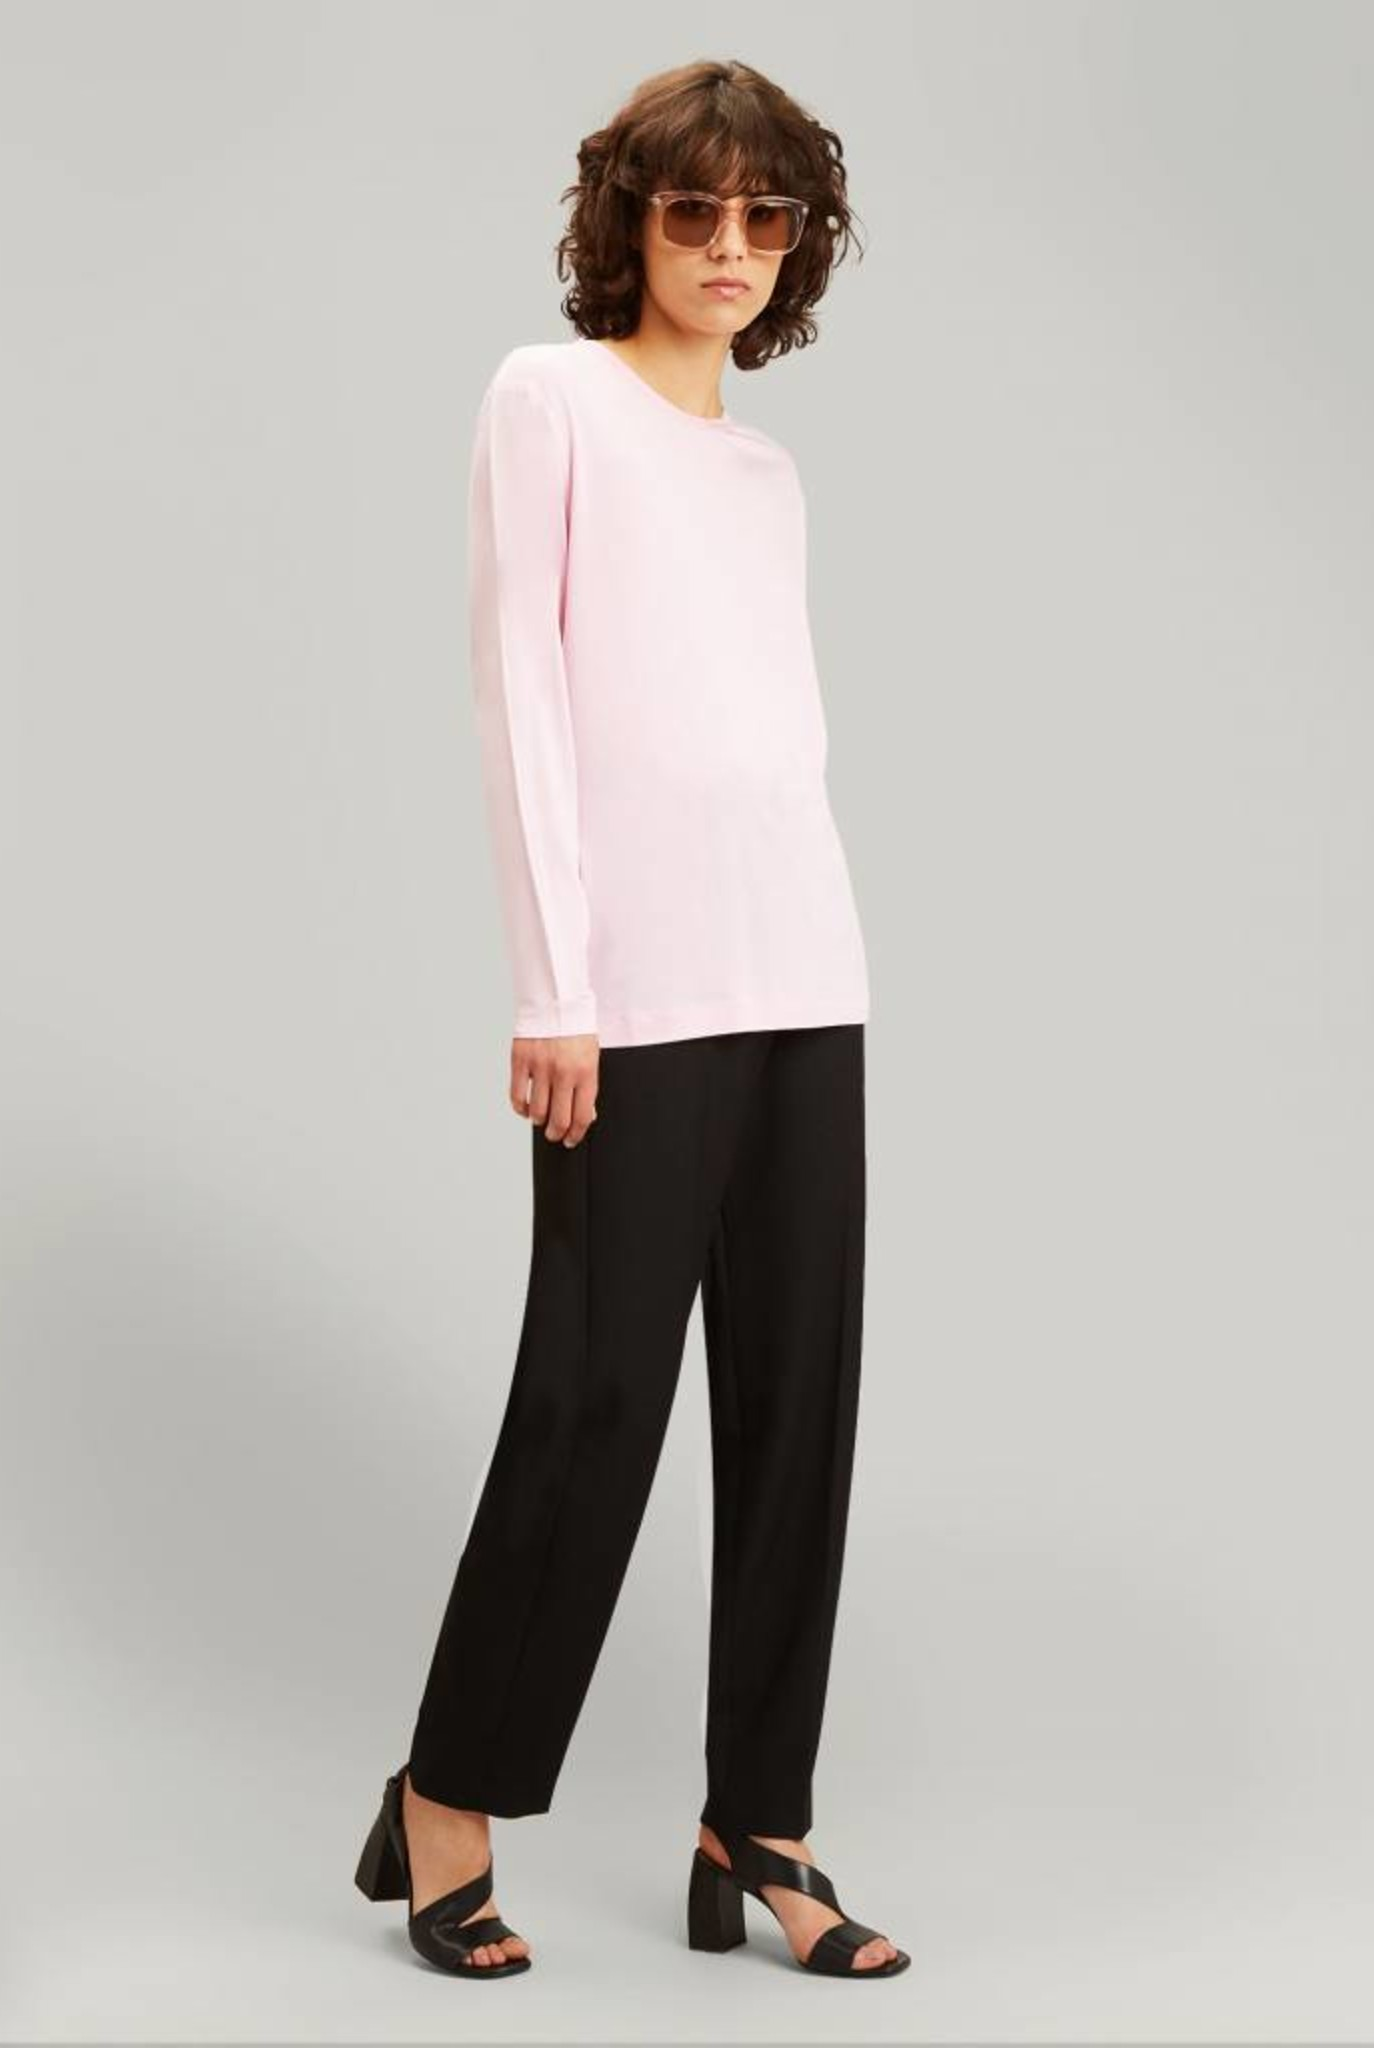 Crew neck sweater open cashmere carnation